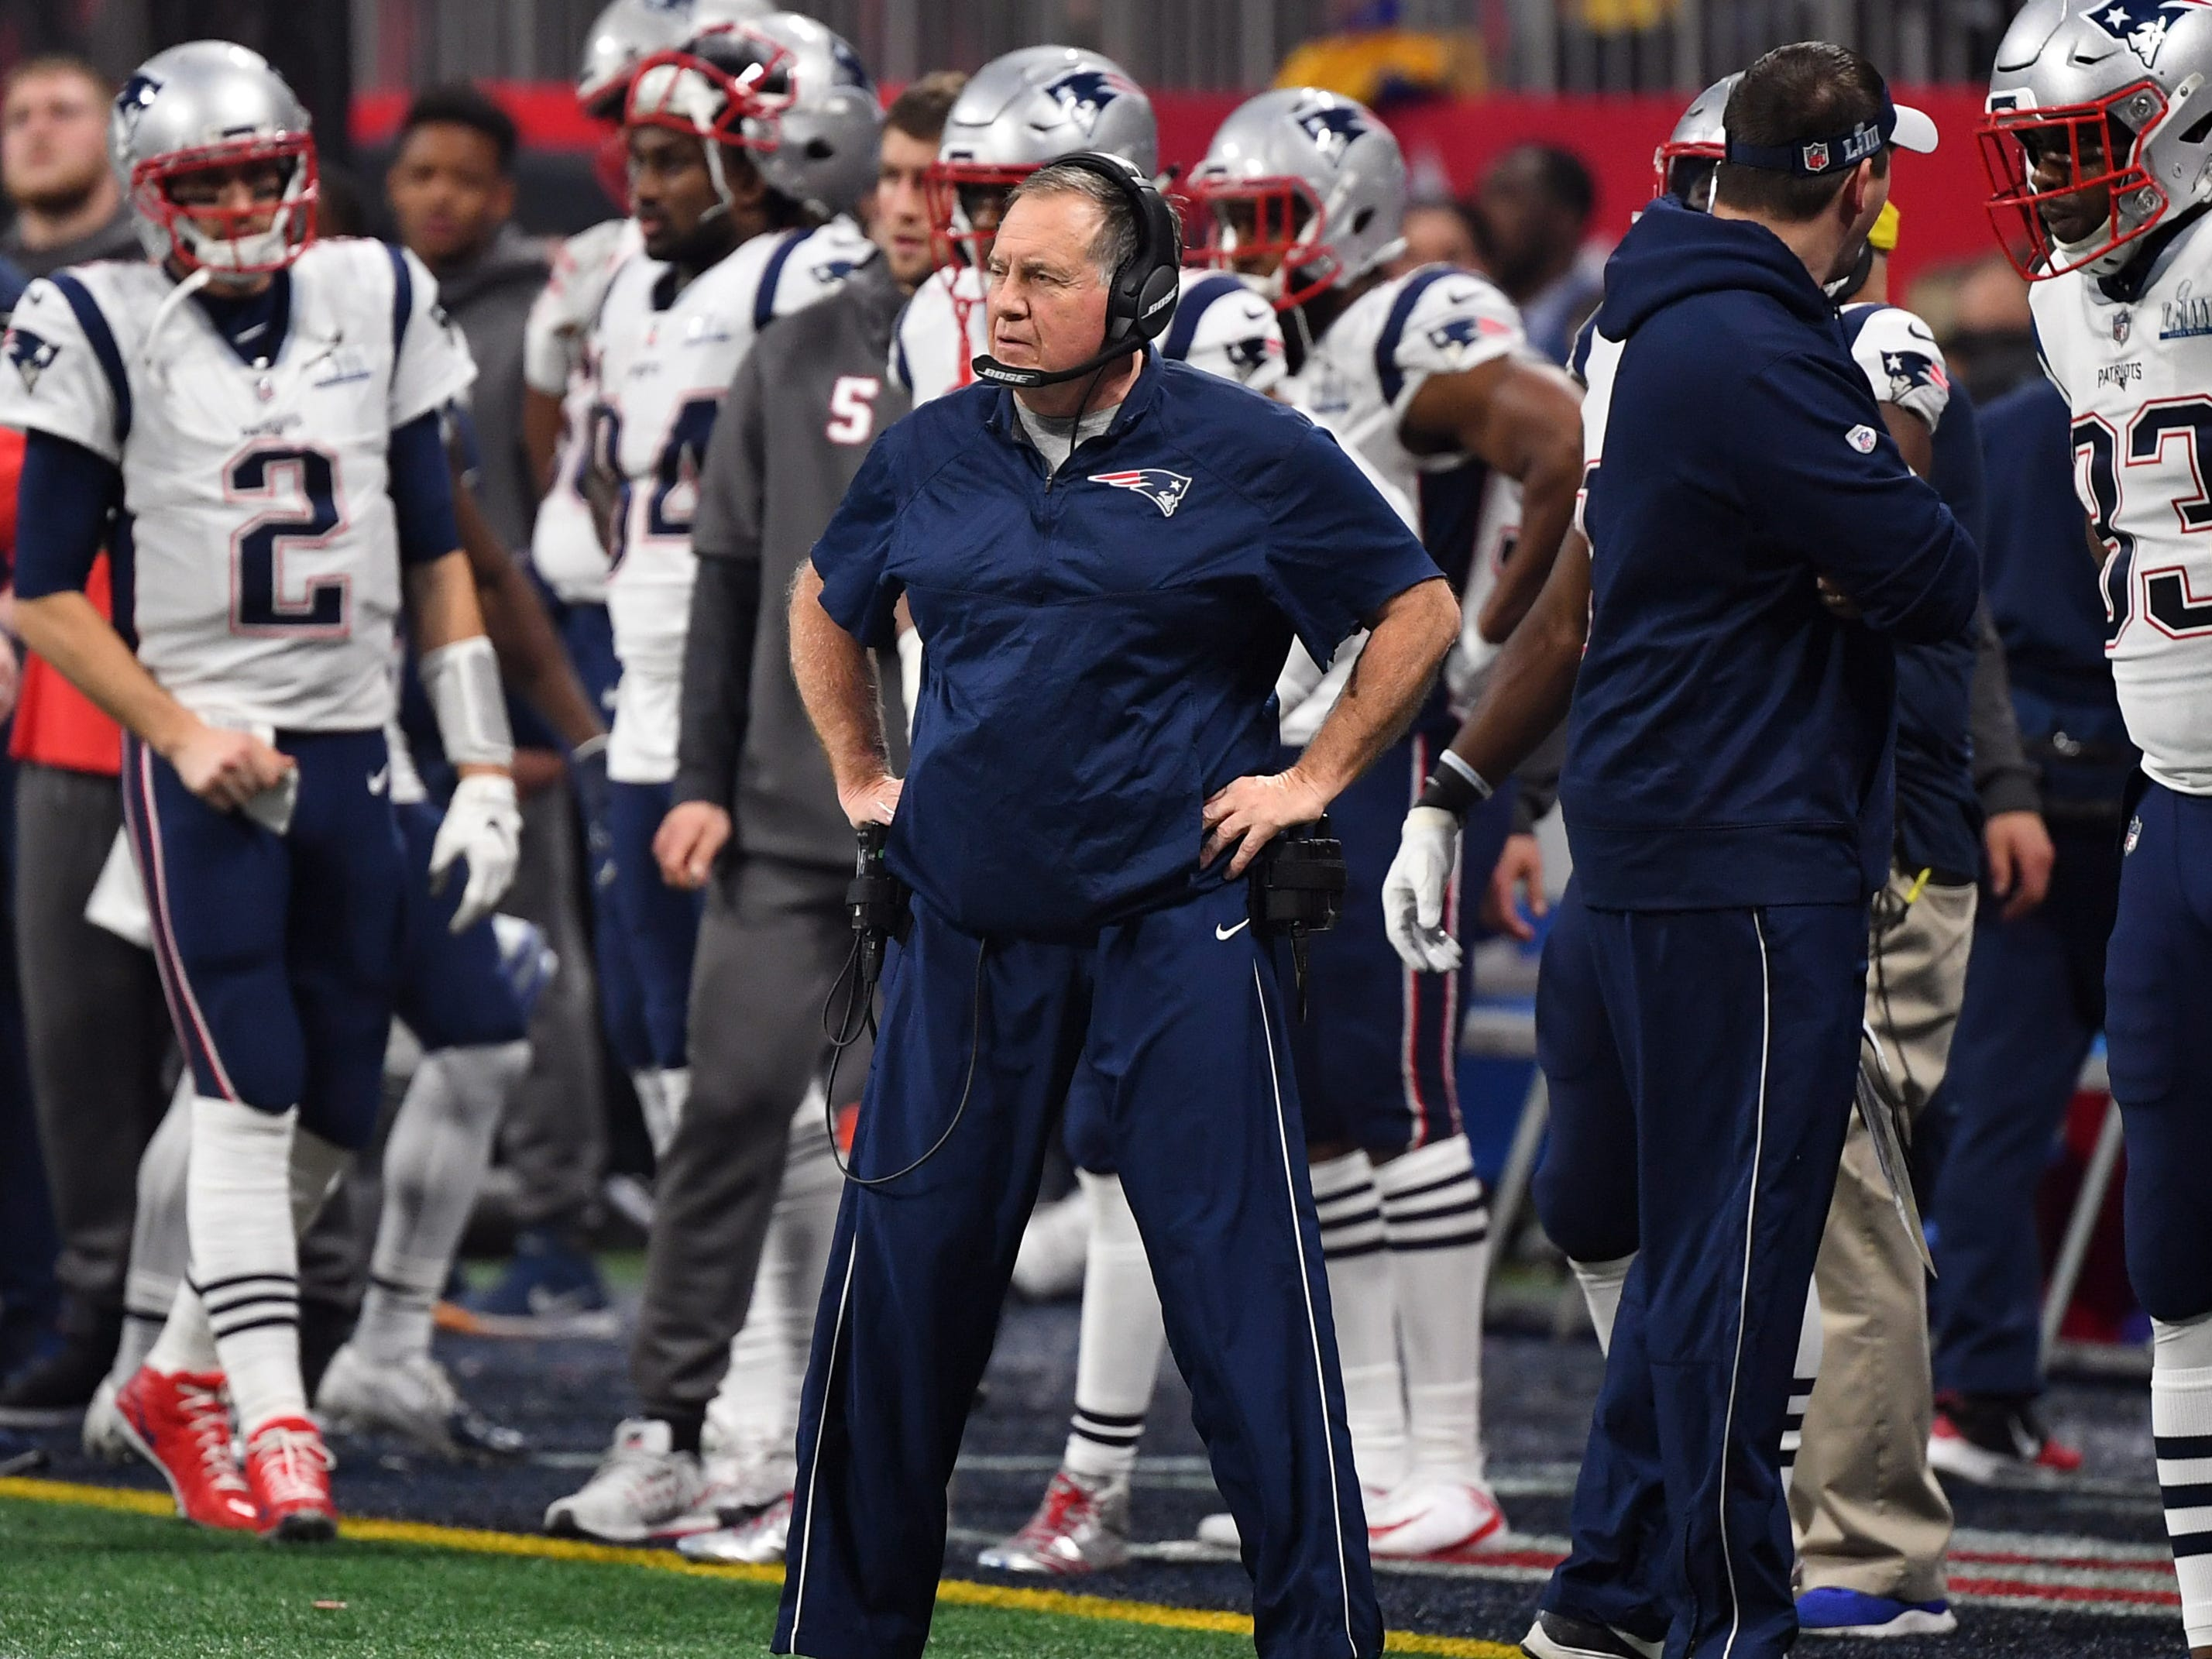 1. Patriots (1): Until proven otherwise ... They dealt for DL Michael Bennett but were minor players in free agency, letting DE Trey Flowers, LT Trent Brown and others go. But this is New England — expect an ace to emerge from Bill Belichick's cut-off sleeve at some point, likely nearer draft.